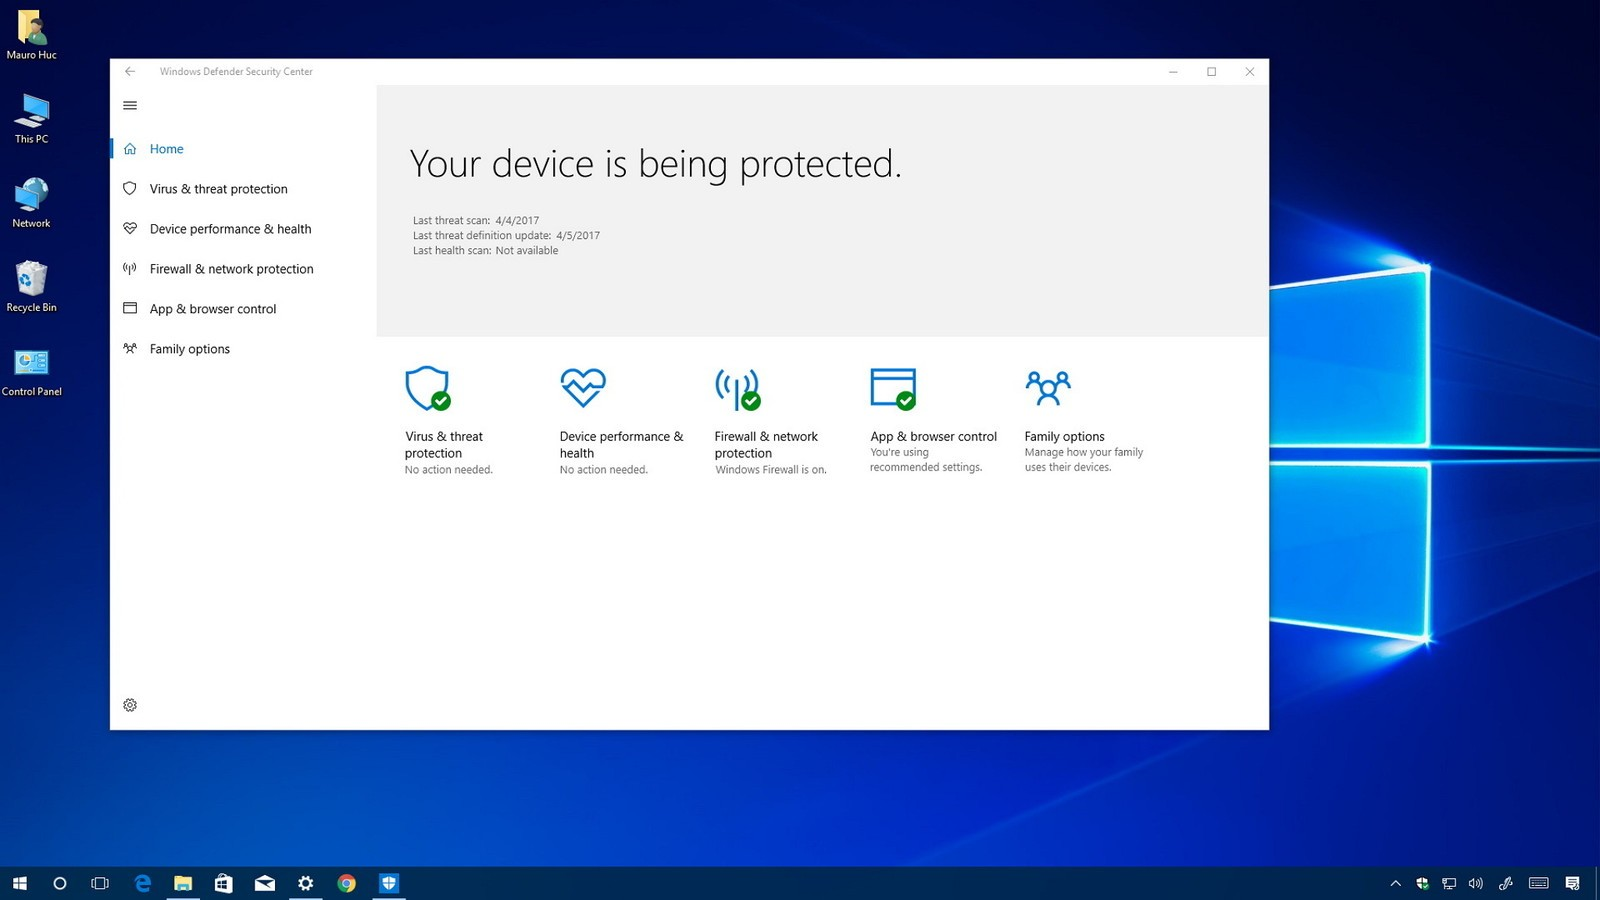 windows10cu defender scurity center